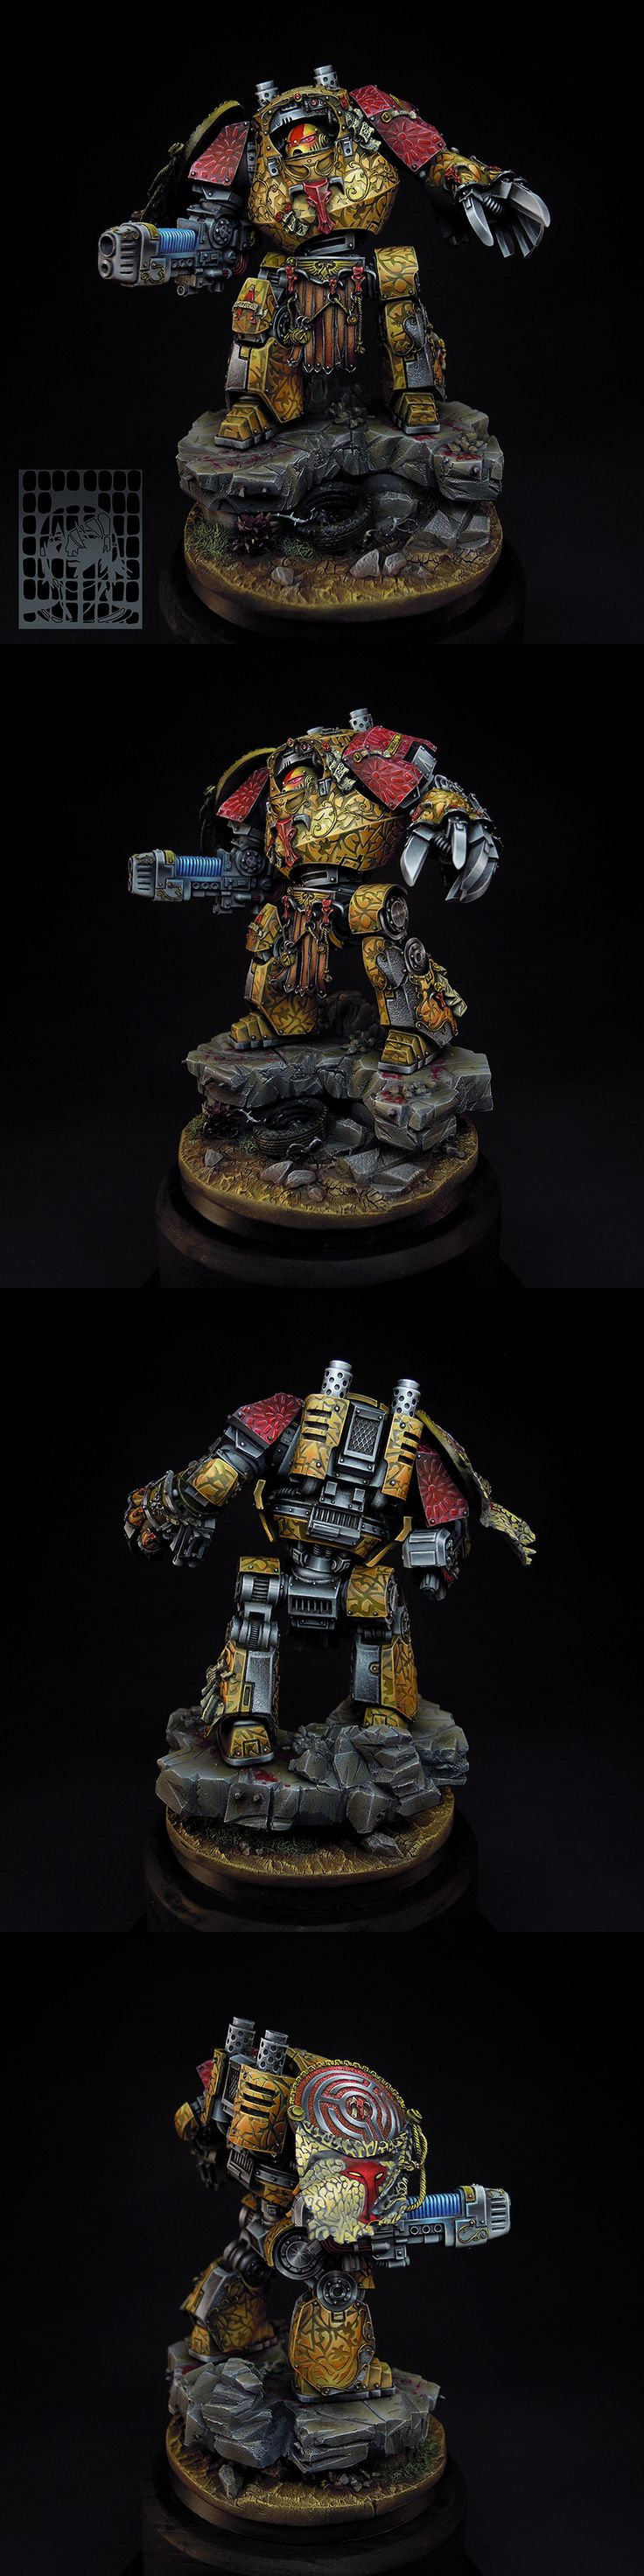 warhammer 40k - Minotaurs Dreadnought Hecaton Aiakos by We7